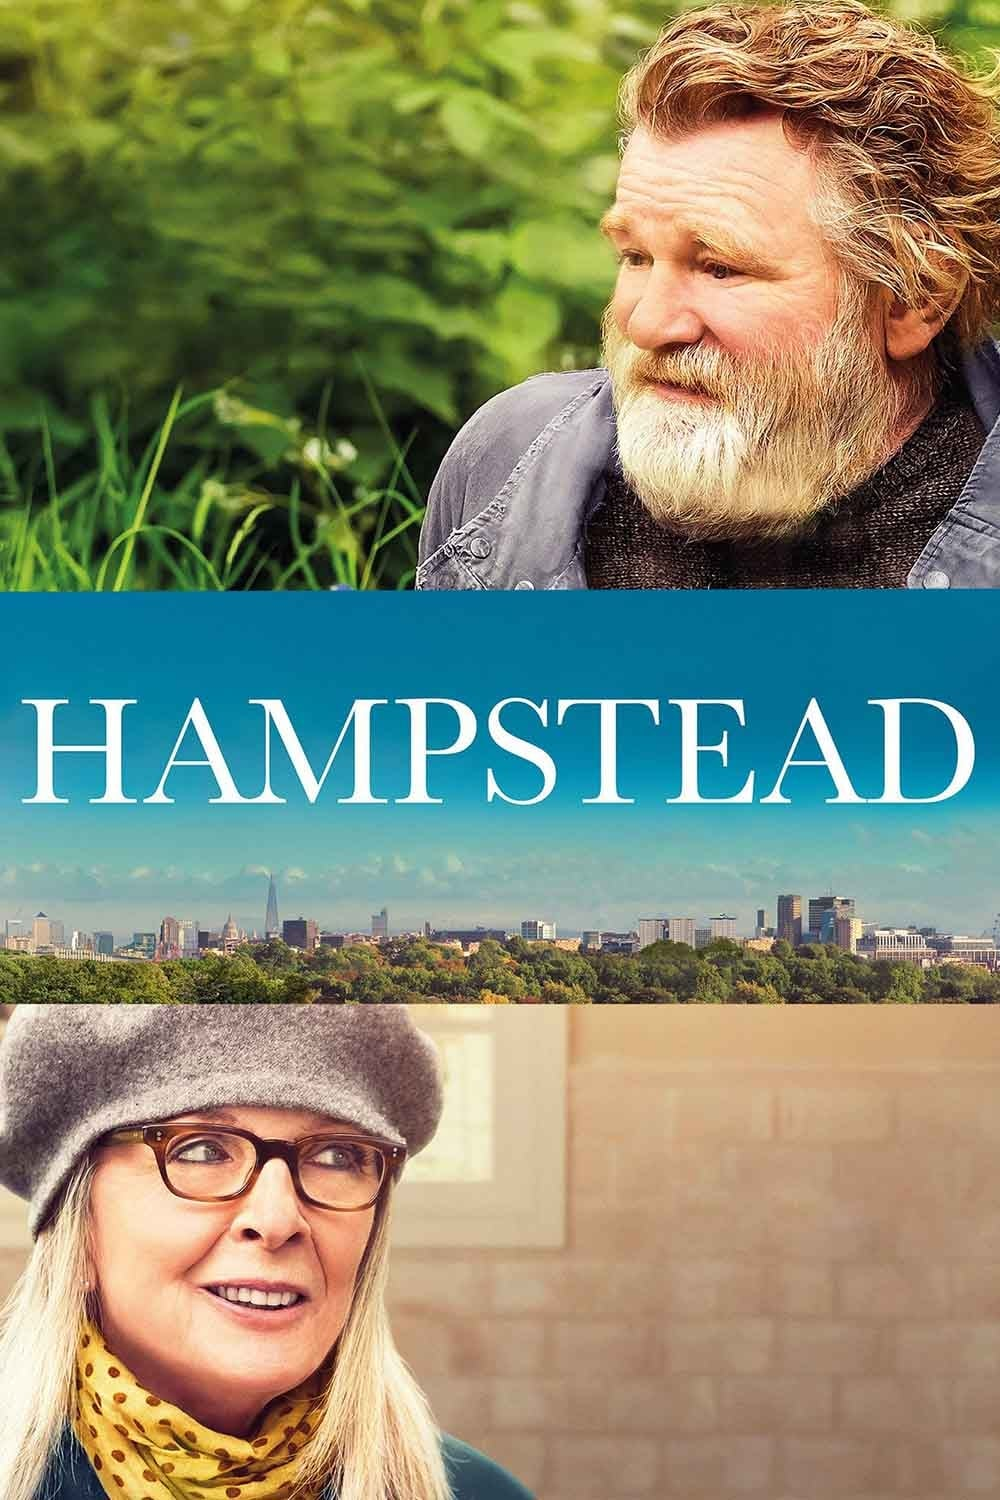 Hampstead